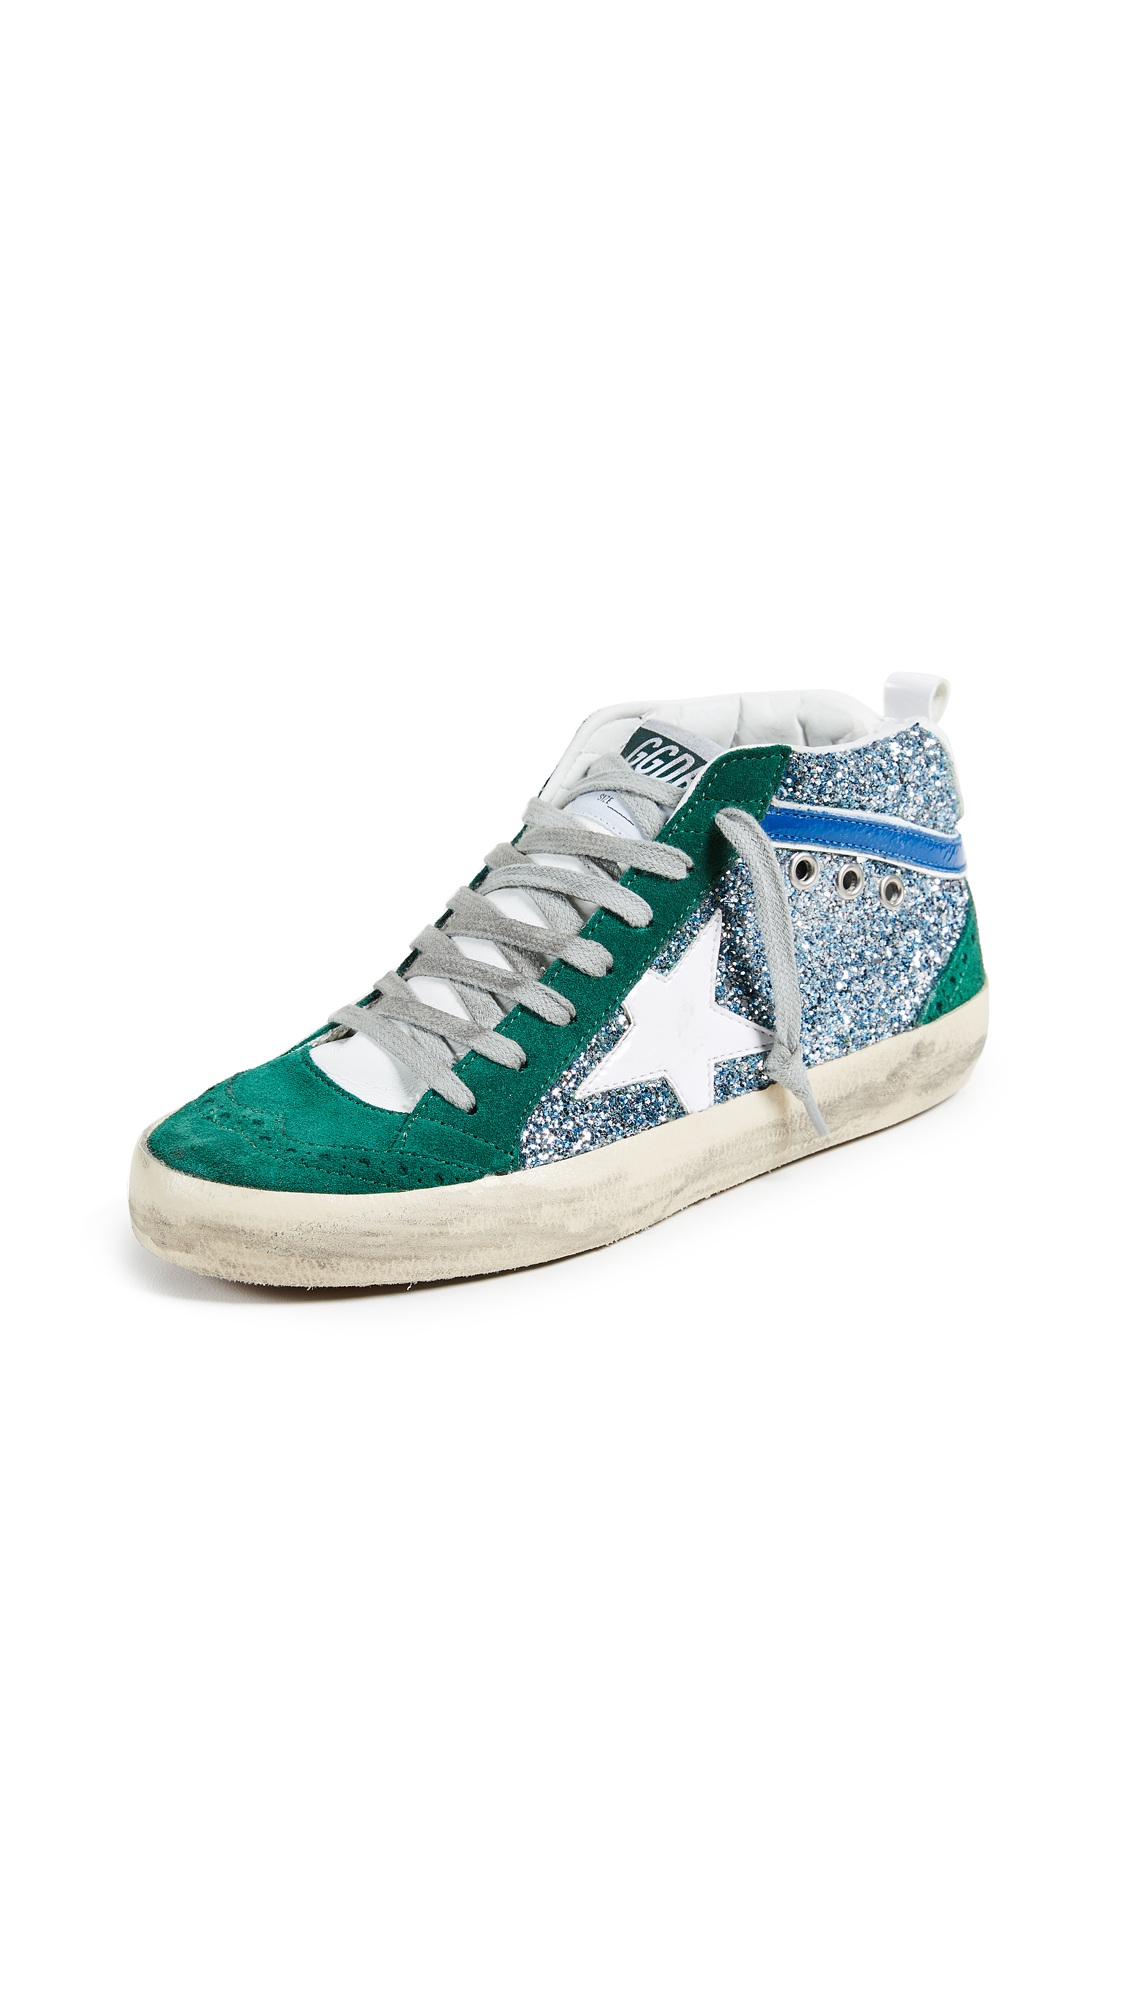 Golden Goose Mid Star Sneakers - Green/White